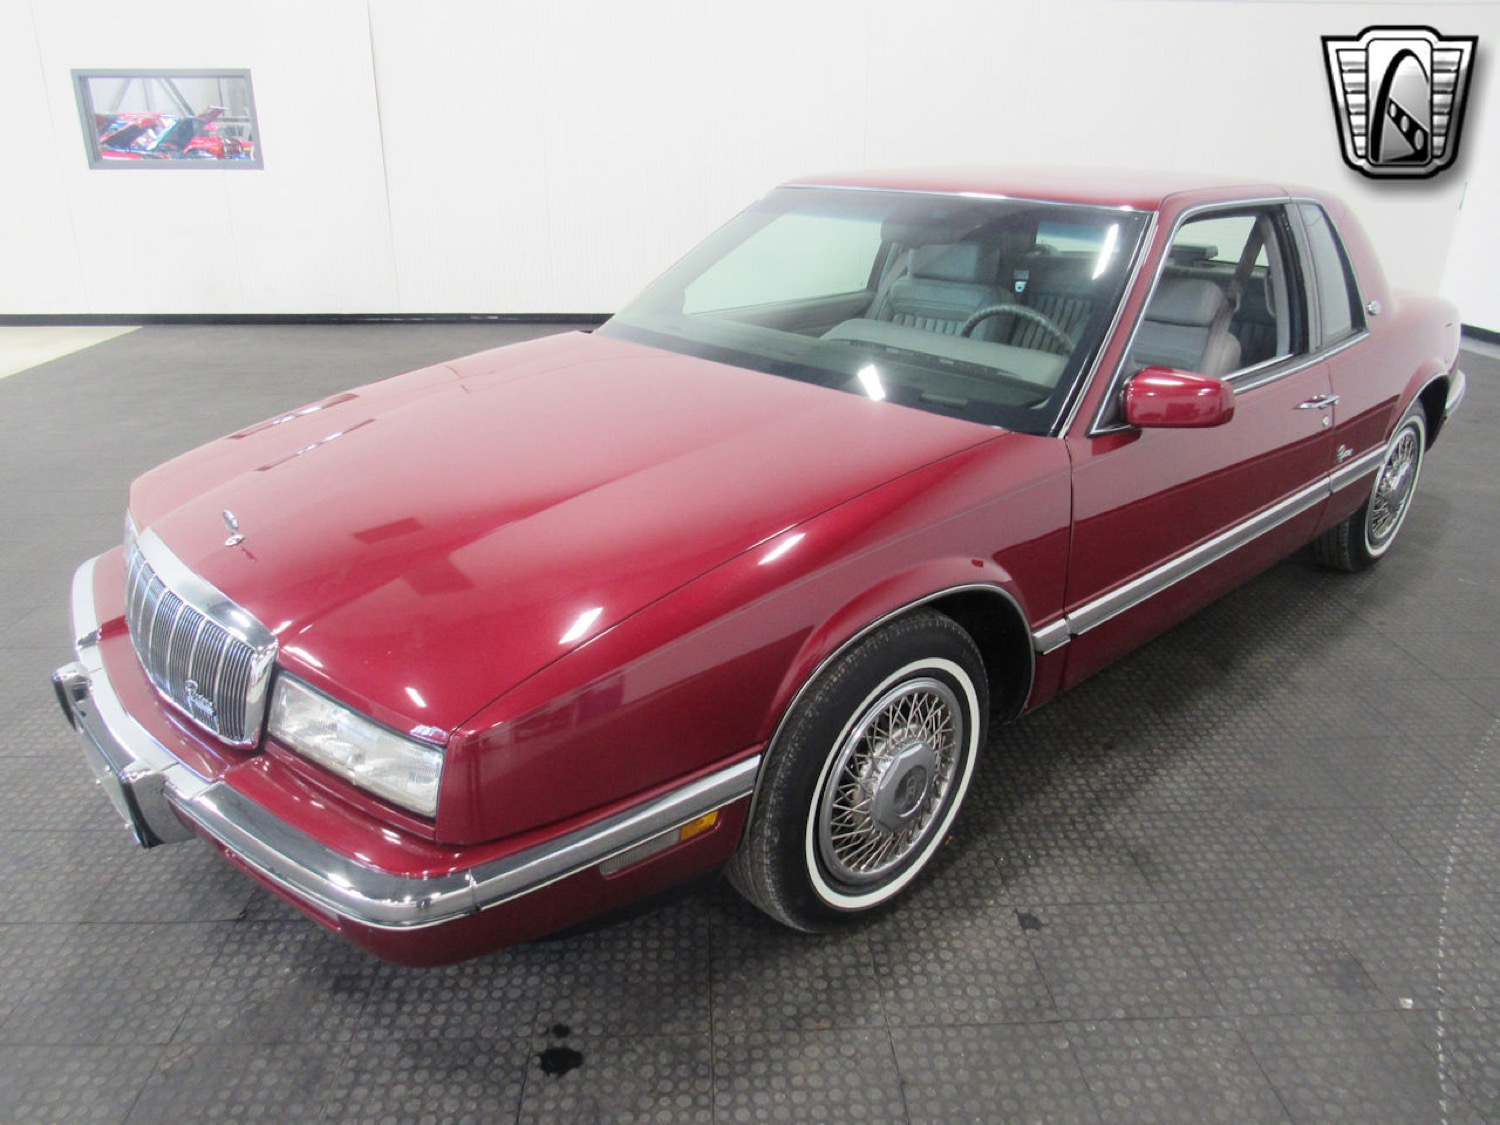 Slick 1992 Buick Riviera For Sale: Video | Gm Authority 2021 Buick Riviera Custom, Price, Parts